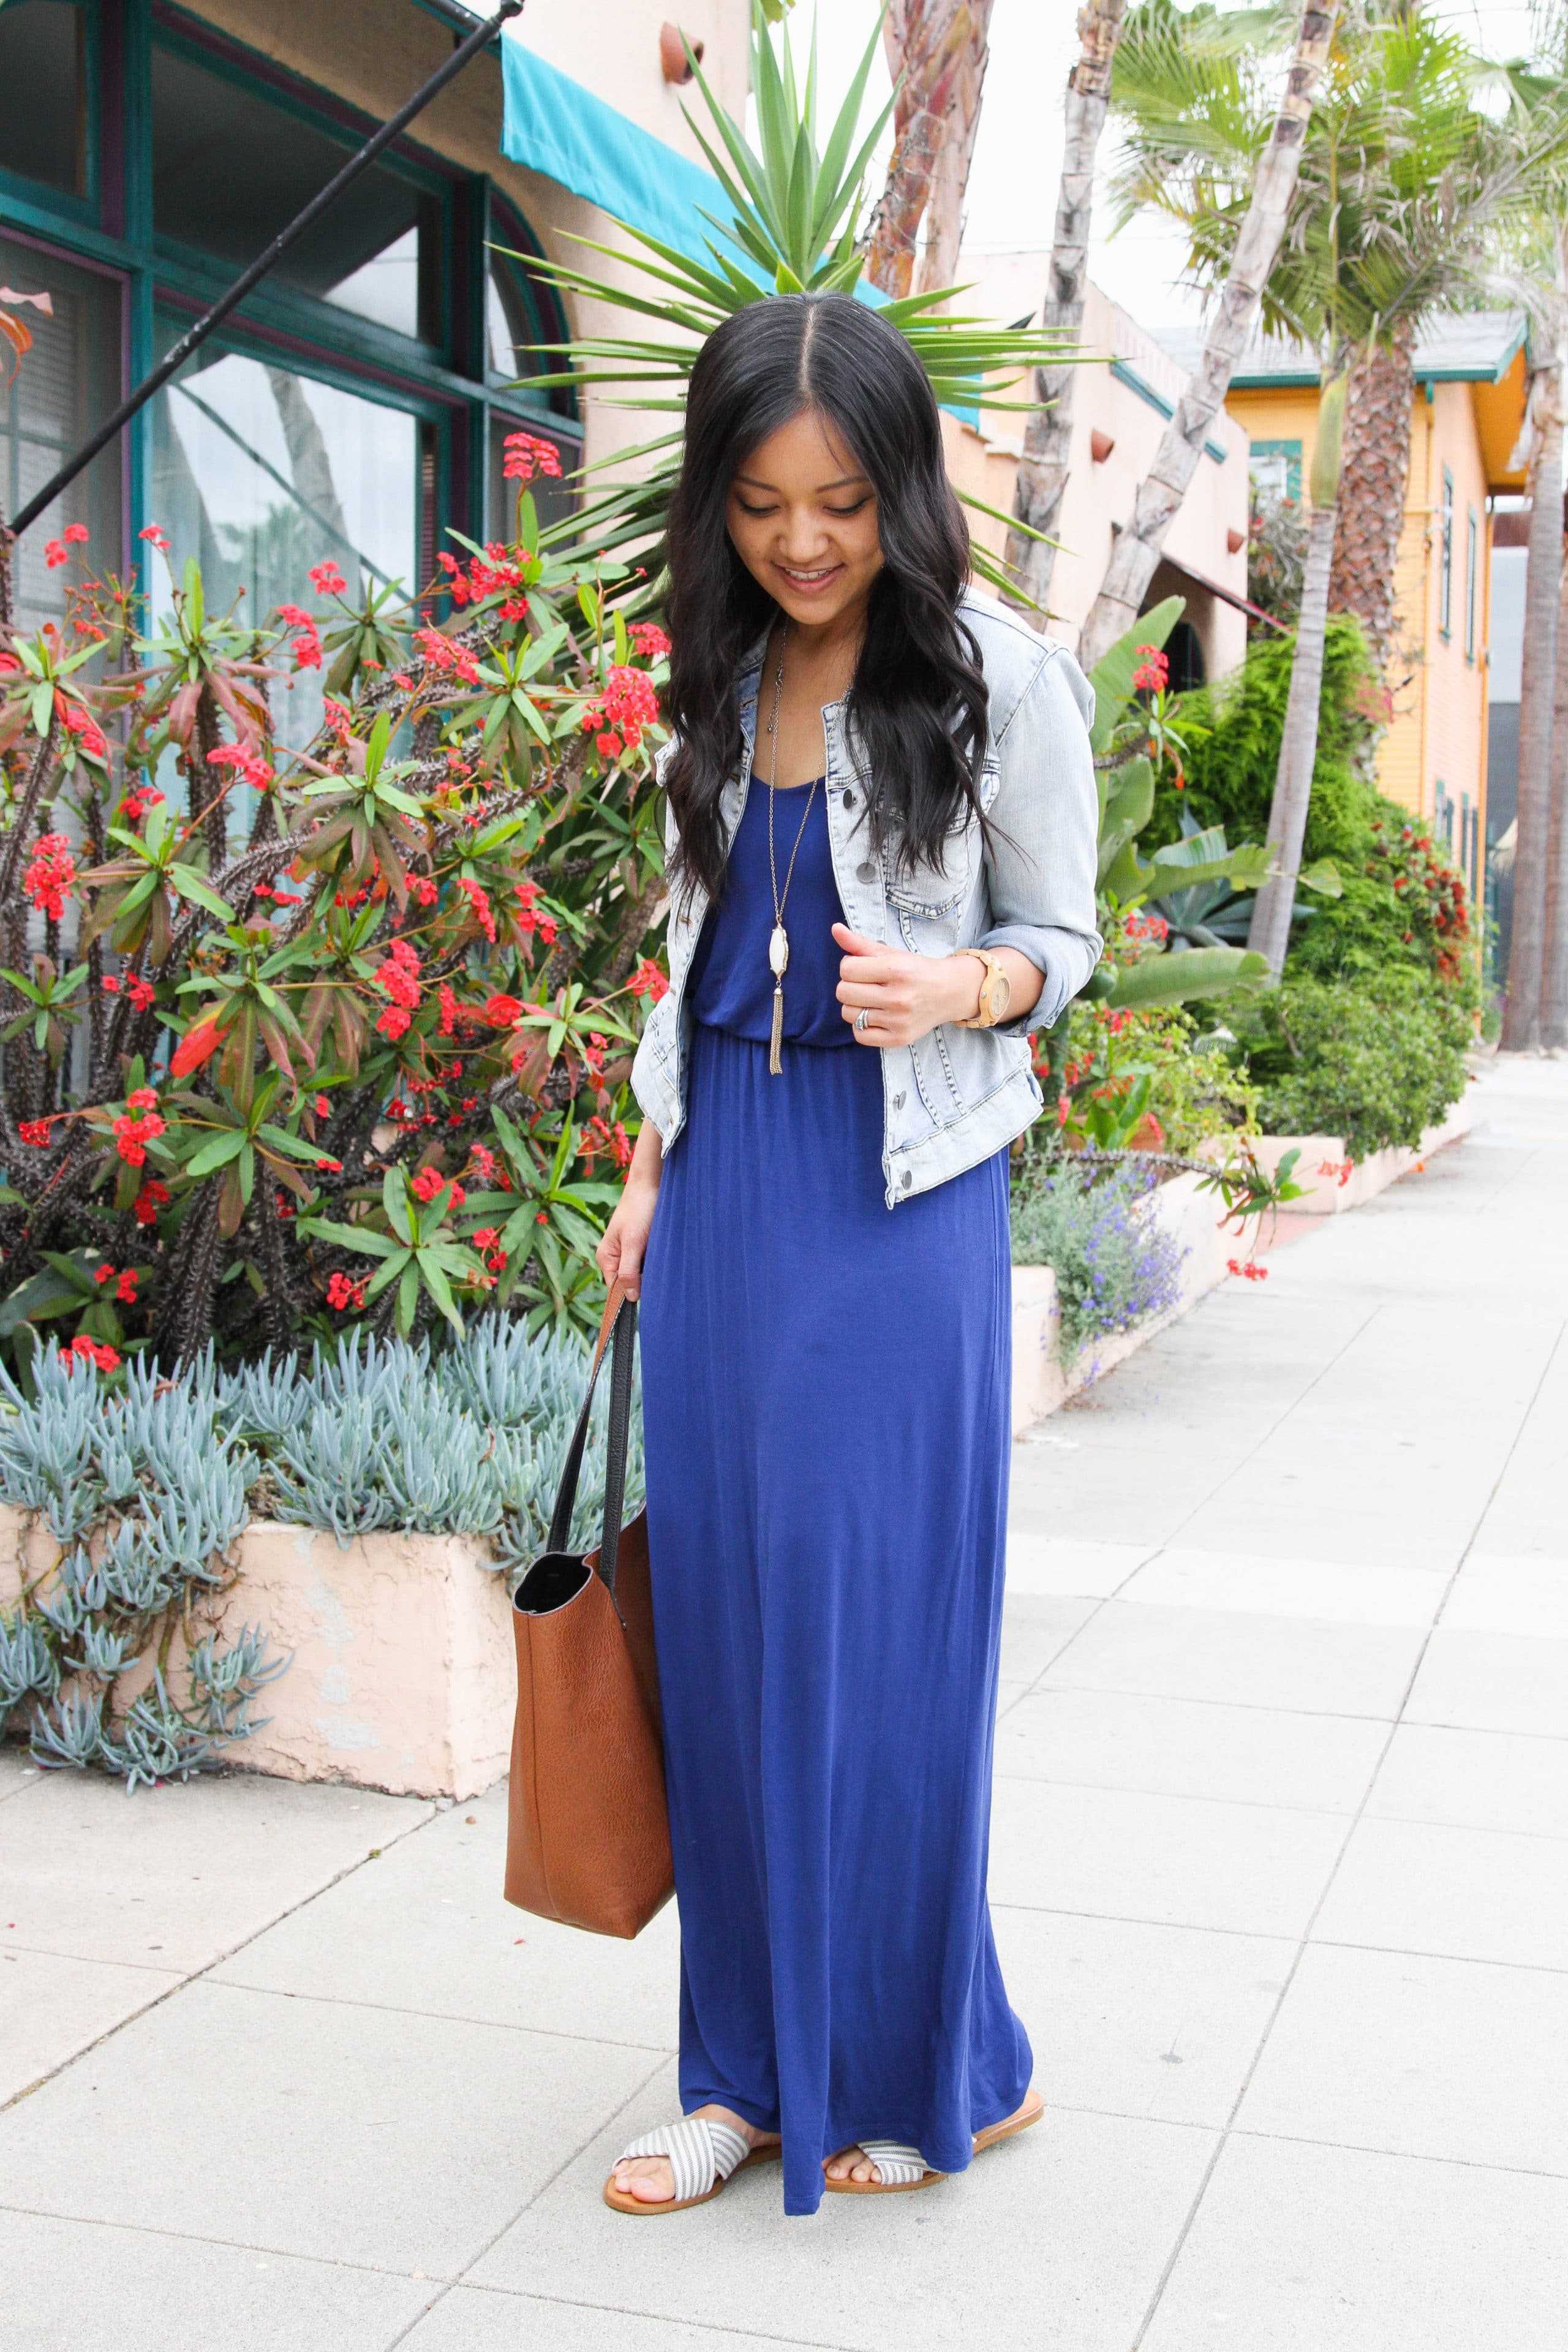 88b7c48f3 blue maxi dress, denim jacket, brown tote and pendant necklace looking down  whole body